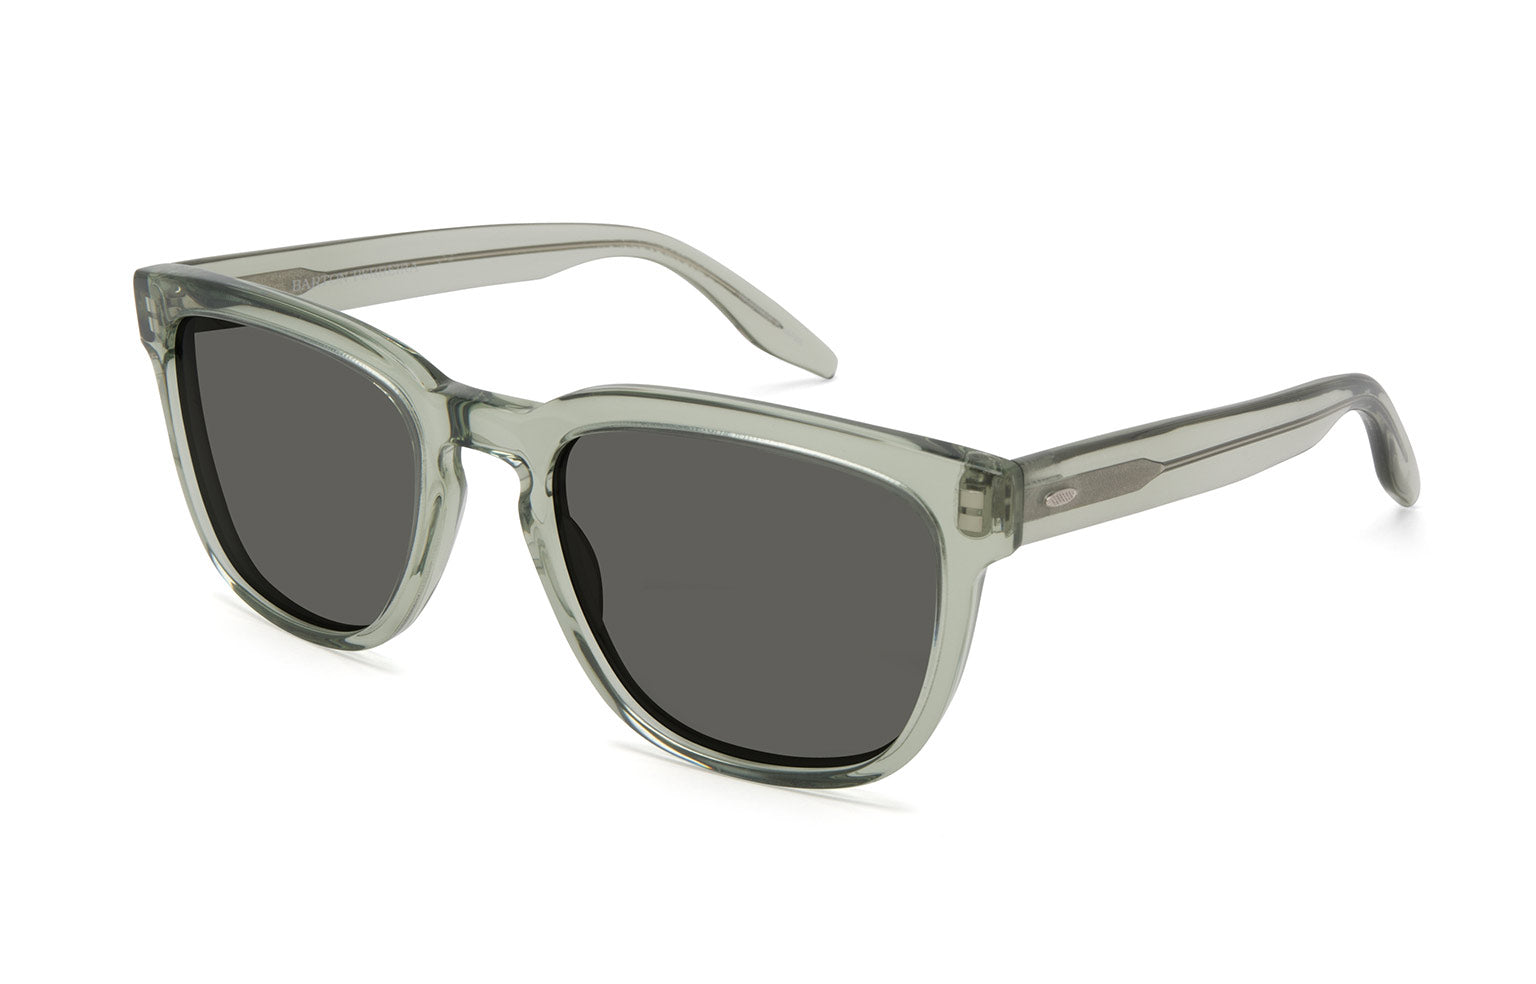 339e7904f47 ... and a matte finish. Barton Perreira s classic Americana styles look  incredible in this translucent green hue. Check out of few of the styles  from Barton ...